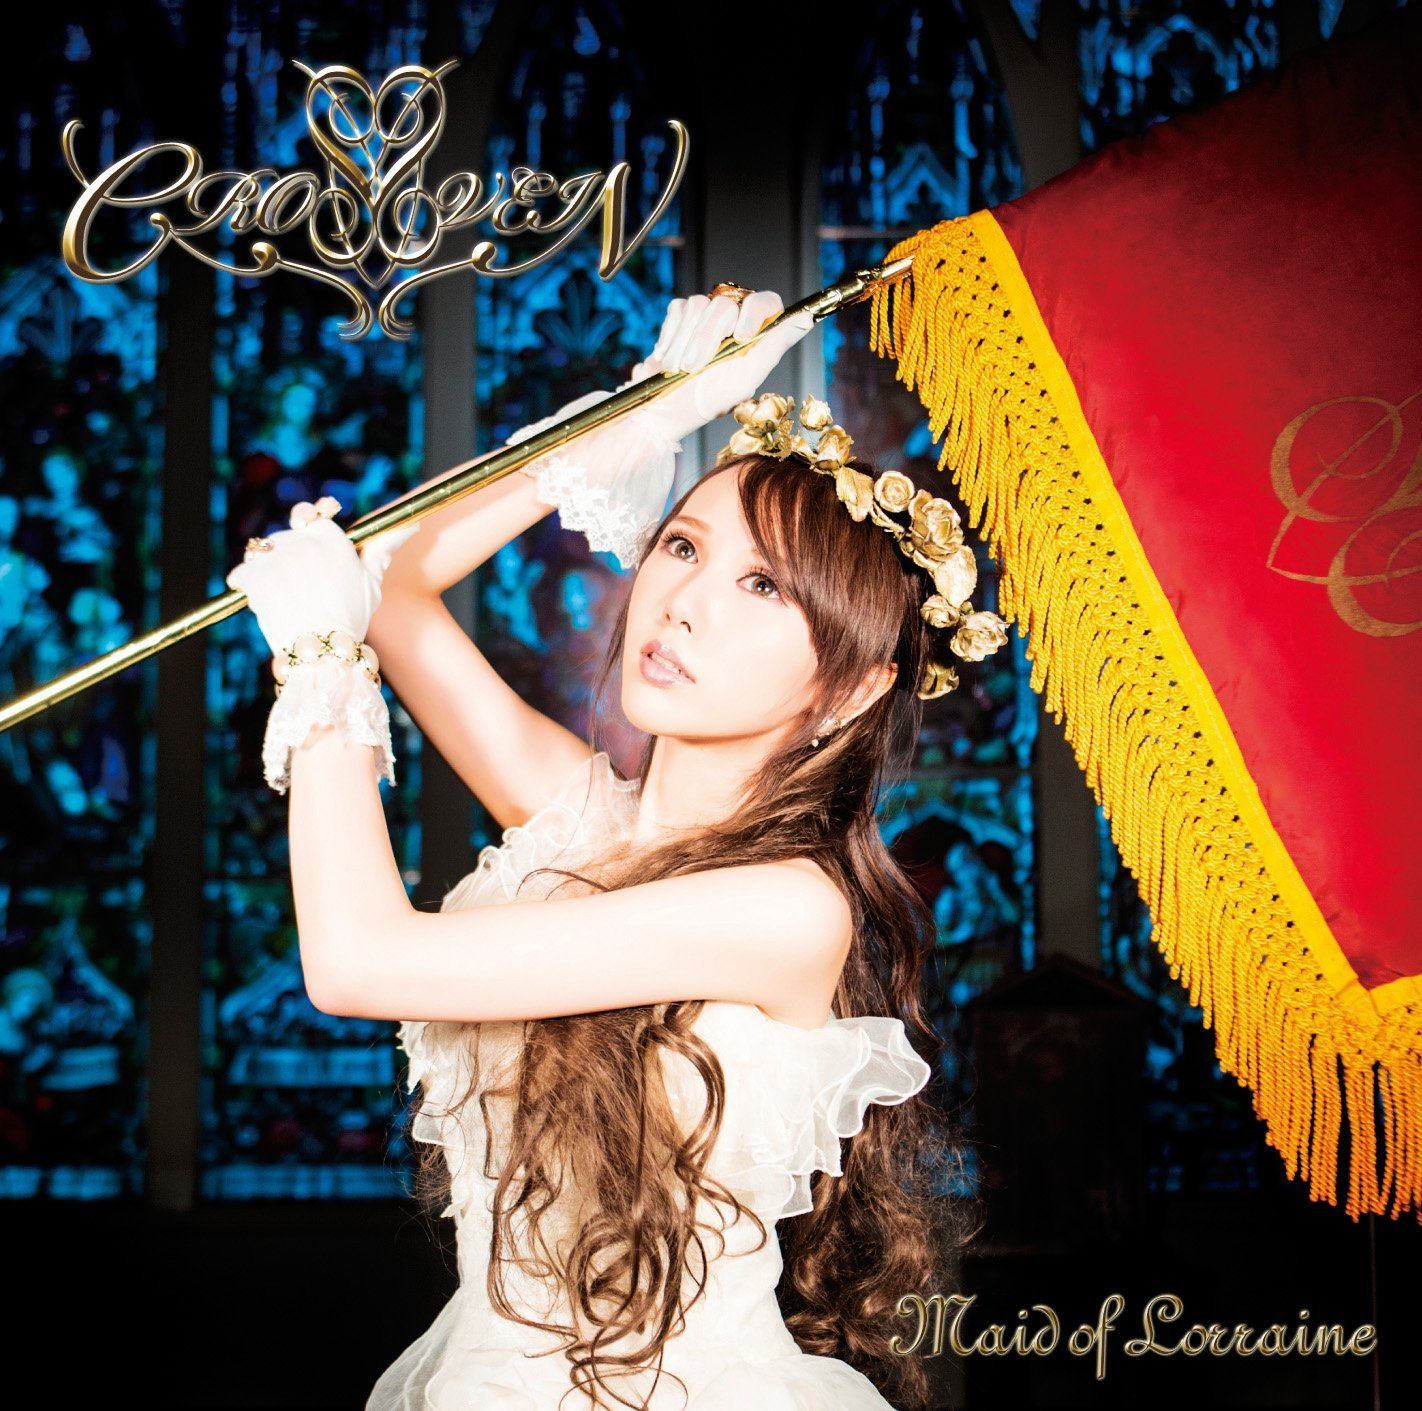 20171030.0530.06 Cross Vein - Maid of Lorraine cover.jpg